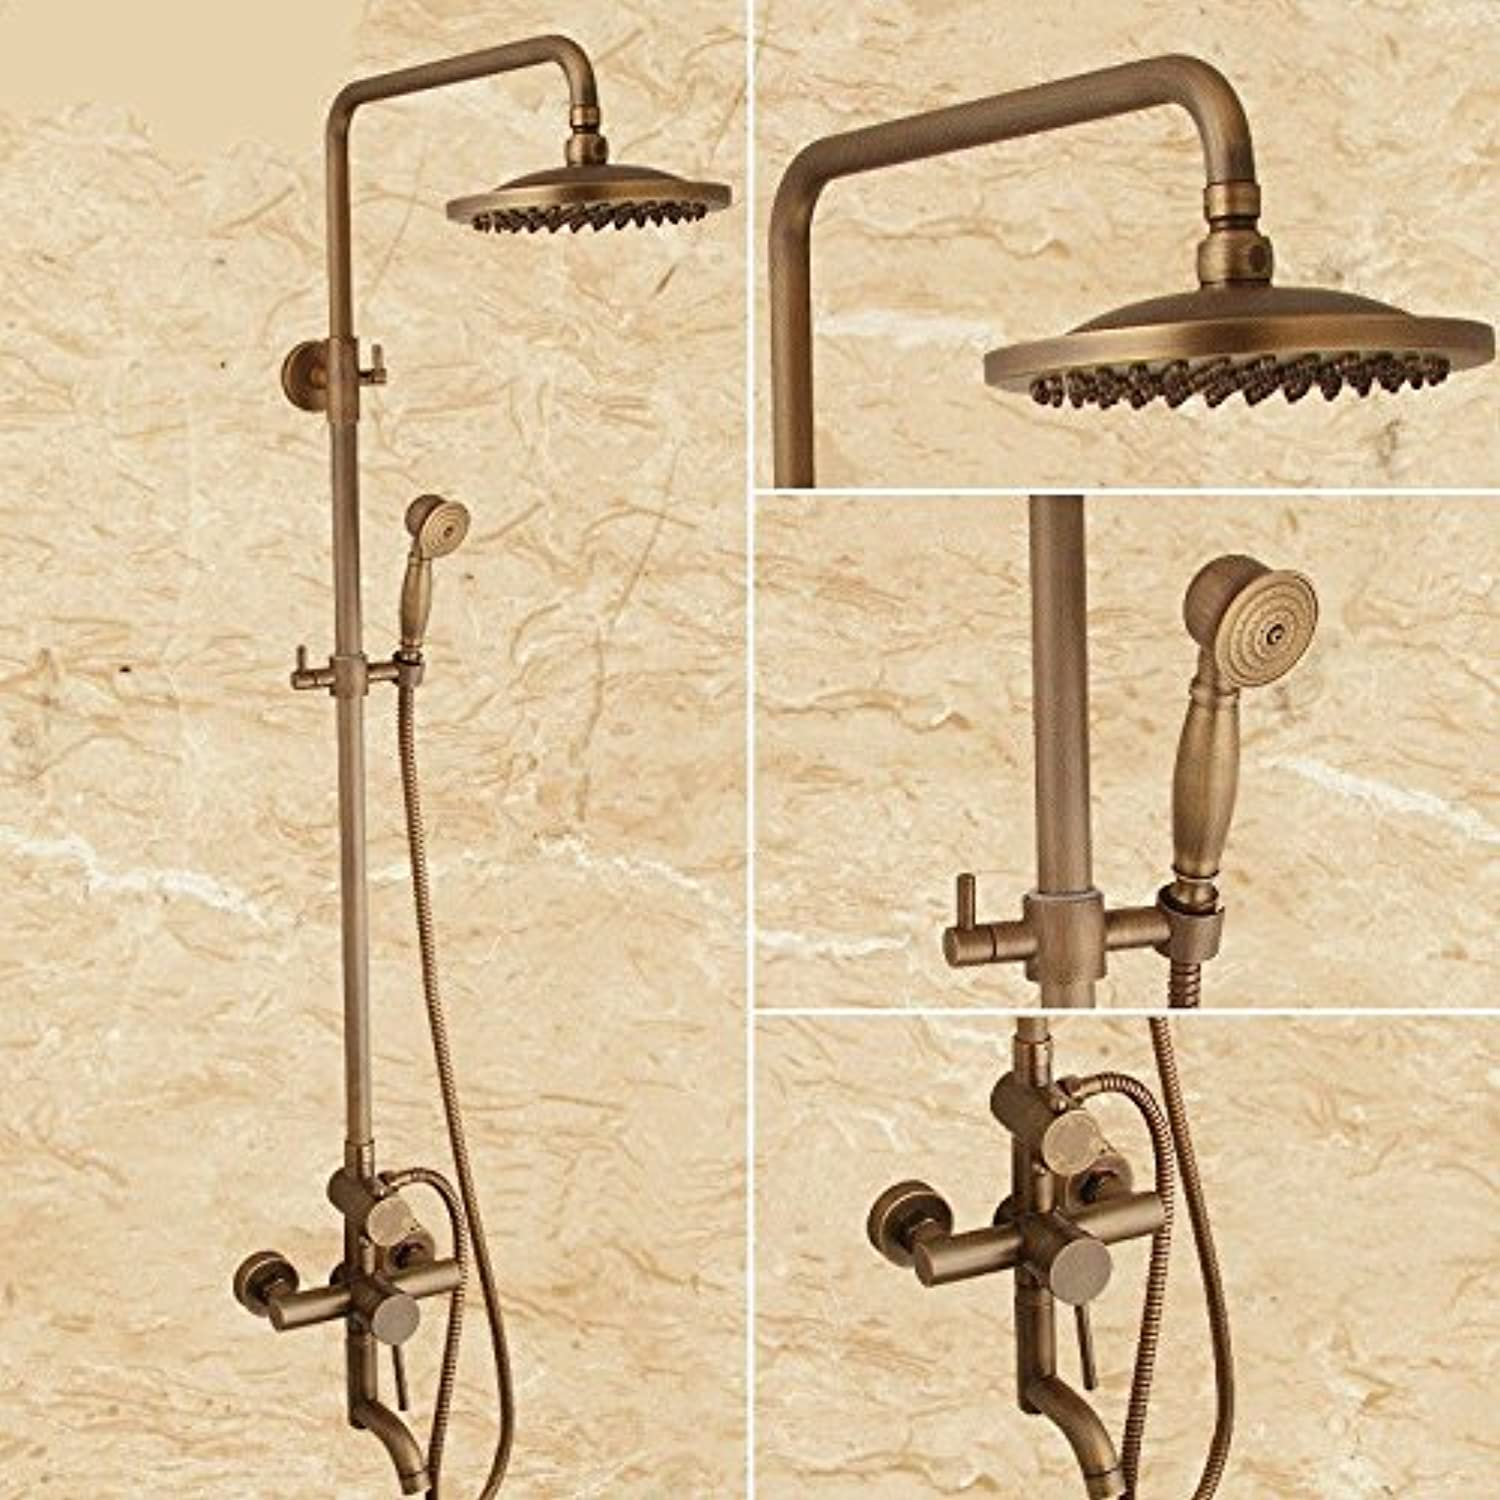 SADASD European High-End Copper Bathroom Shower Faucet Antique Shower Set Retro Can Be Raised And Lowered redating Water Shower Faucet Hot And Cold Water Ceramic Valve Mixer Tap